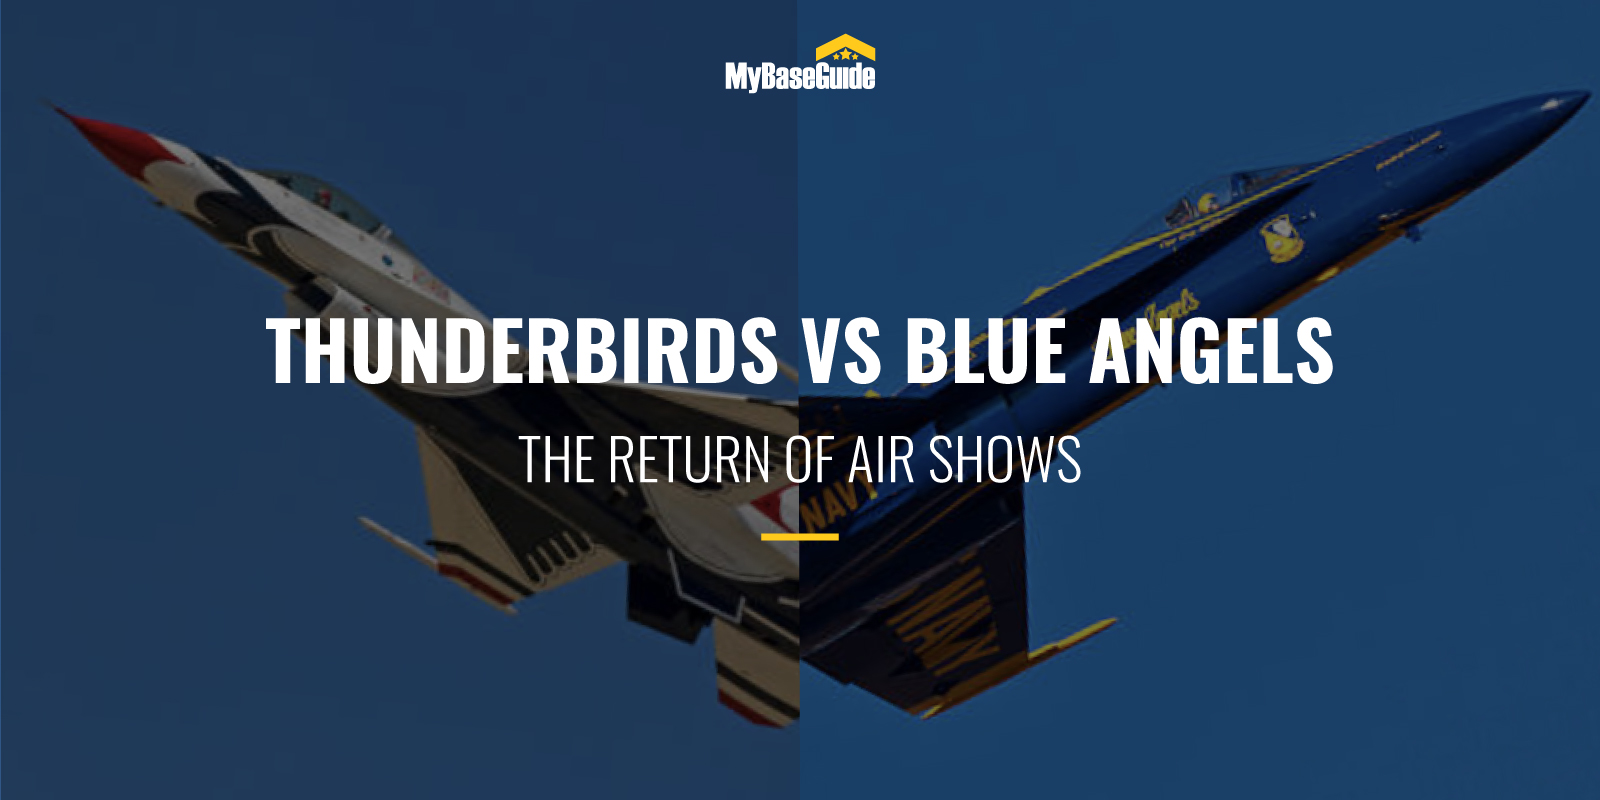 Thunderbirds vs Blue Angels: The Return of the Air Shows